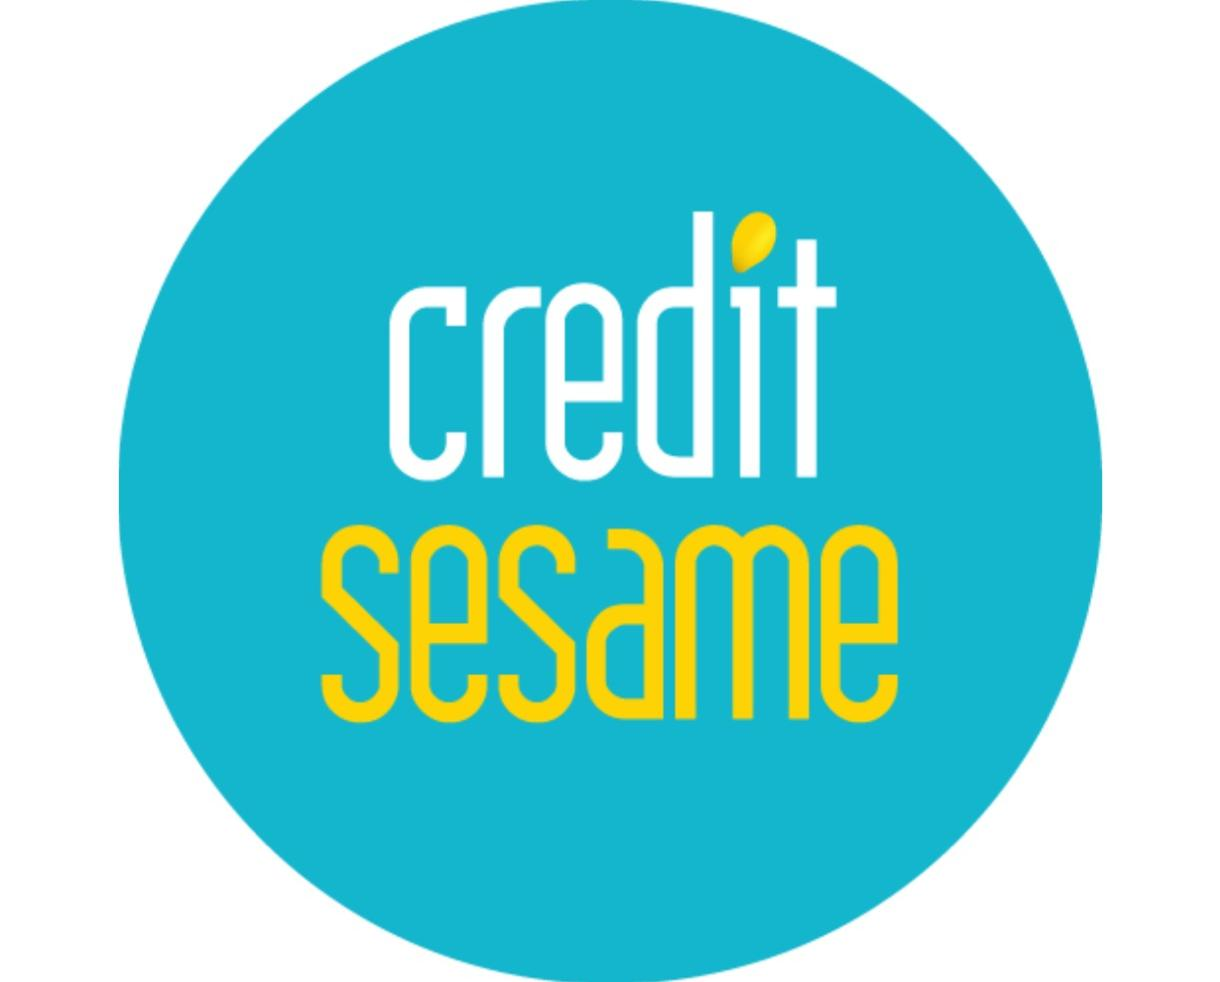 FREE Credit Score Check with Credit Sesame - No Credit Card Required!